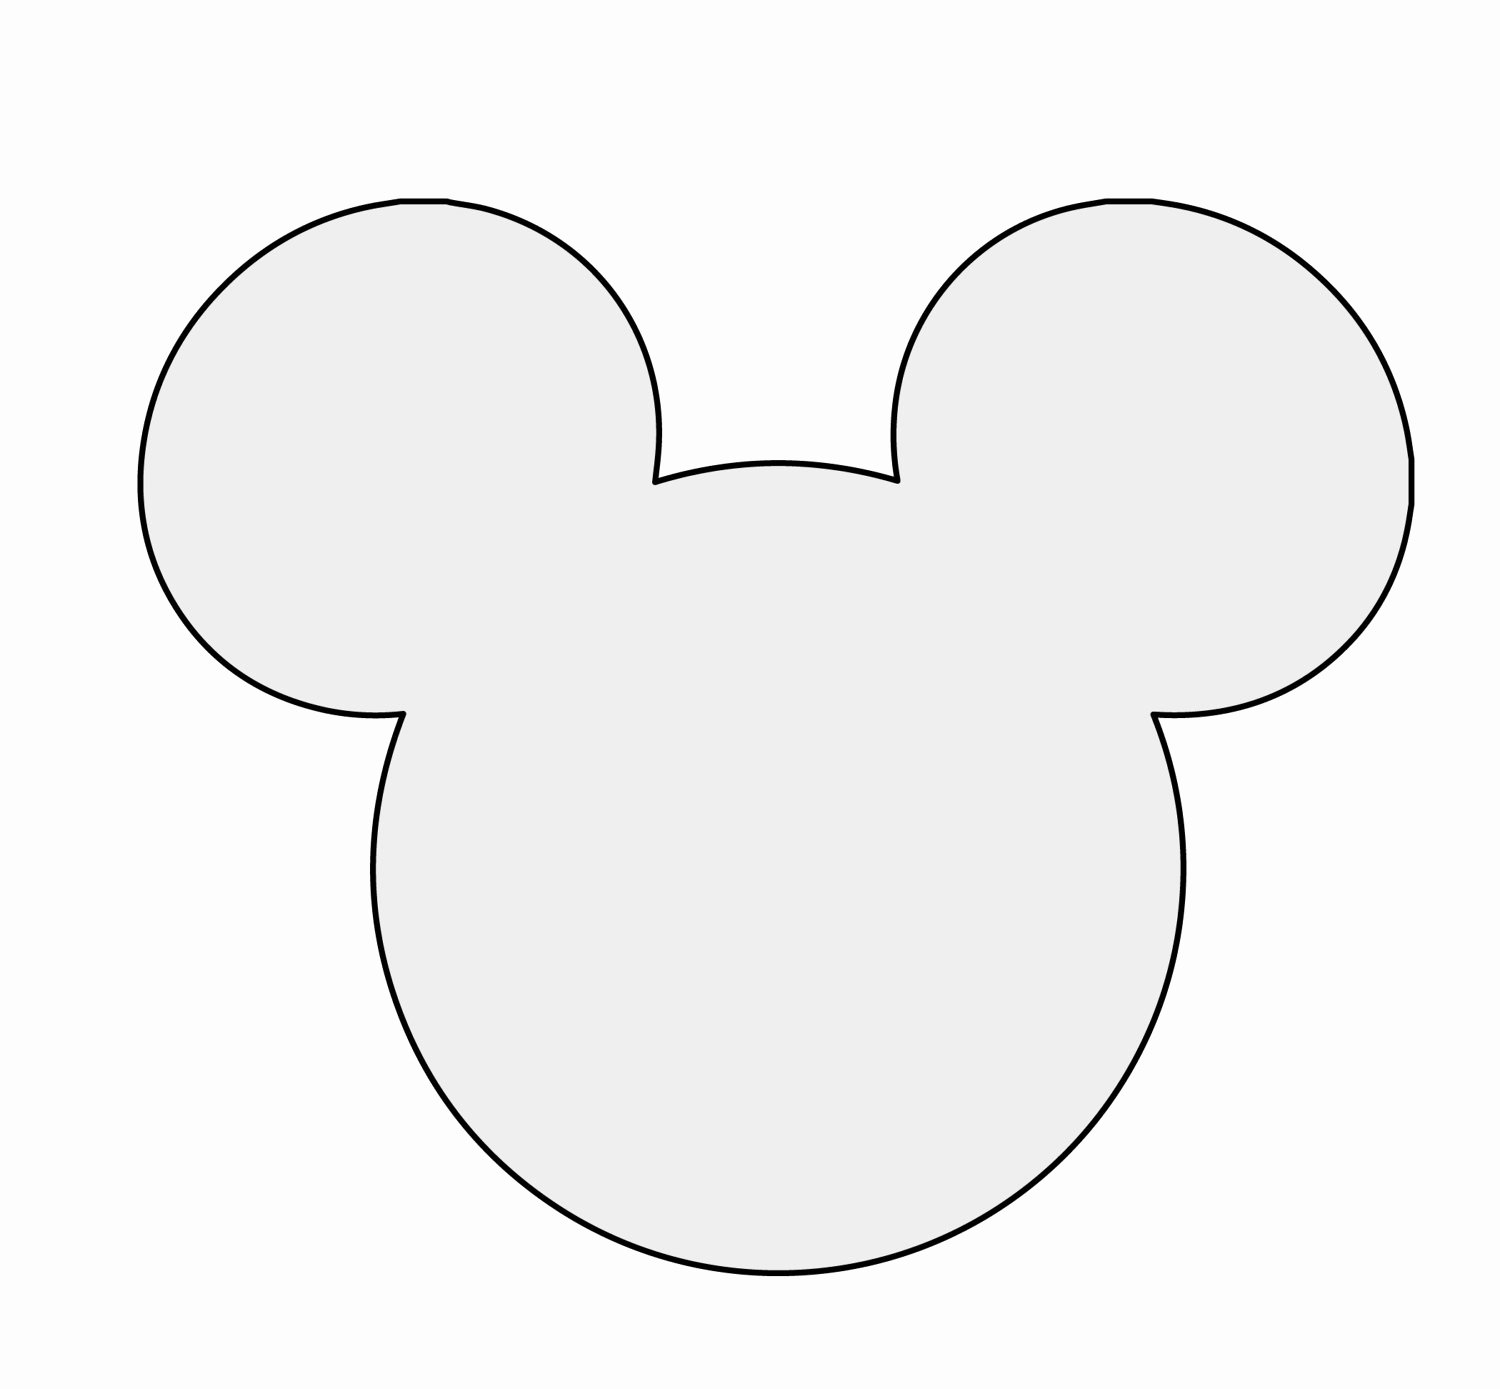 Mickey Mouse Template Free Luxury 5 H String Art Mickey Mouse Pattern Template